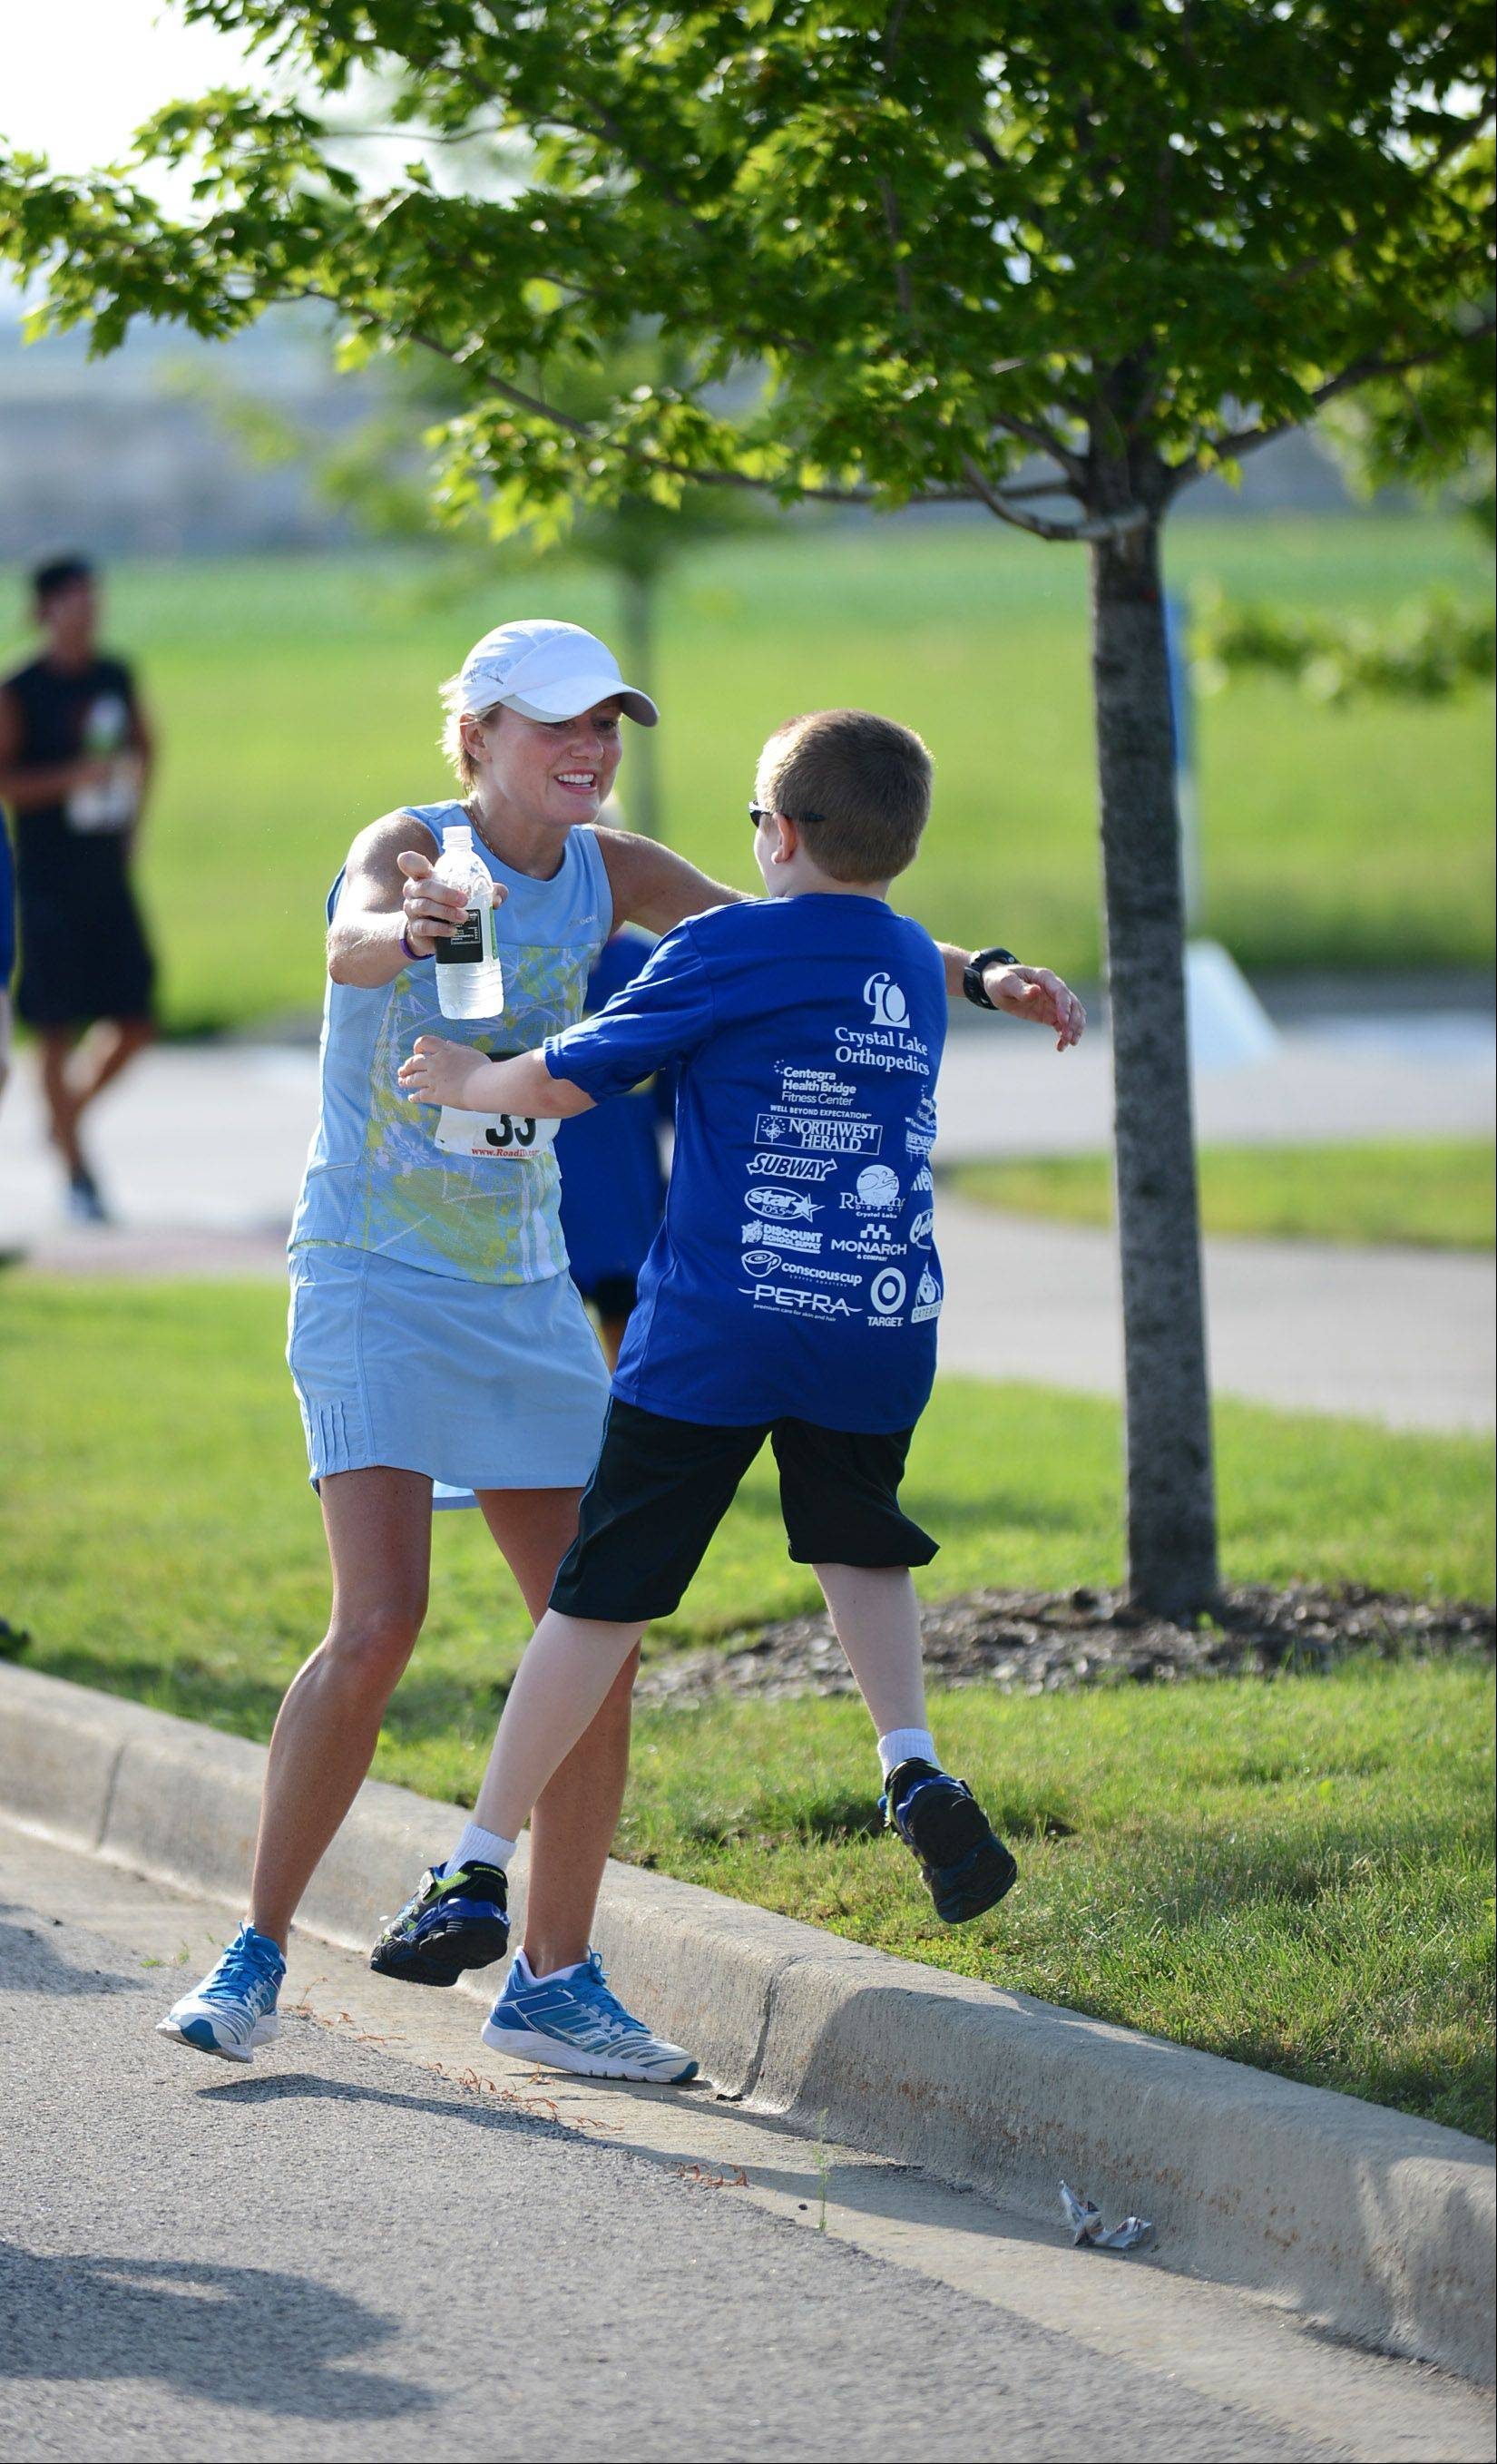 Connor Dampier, 8, jumps into the arms of his mother Angela, after she completed the 13th annual Roadrunner's 5K. The event took place Sunday at the Centegra Health Bridge Fitness Center in Huntley.